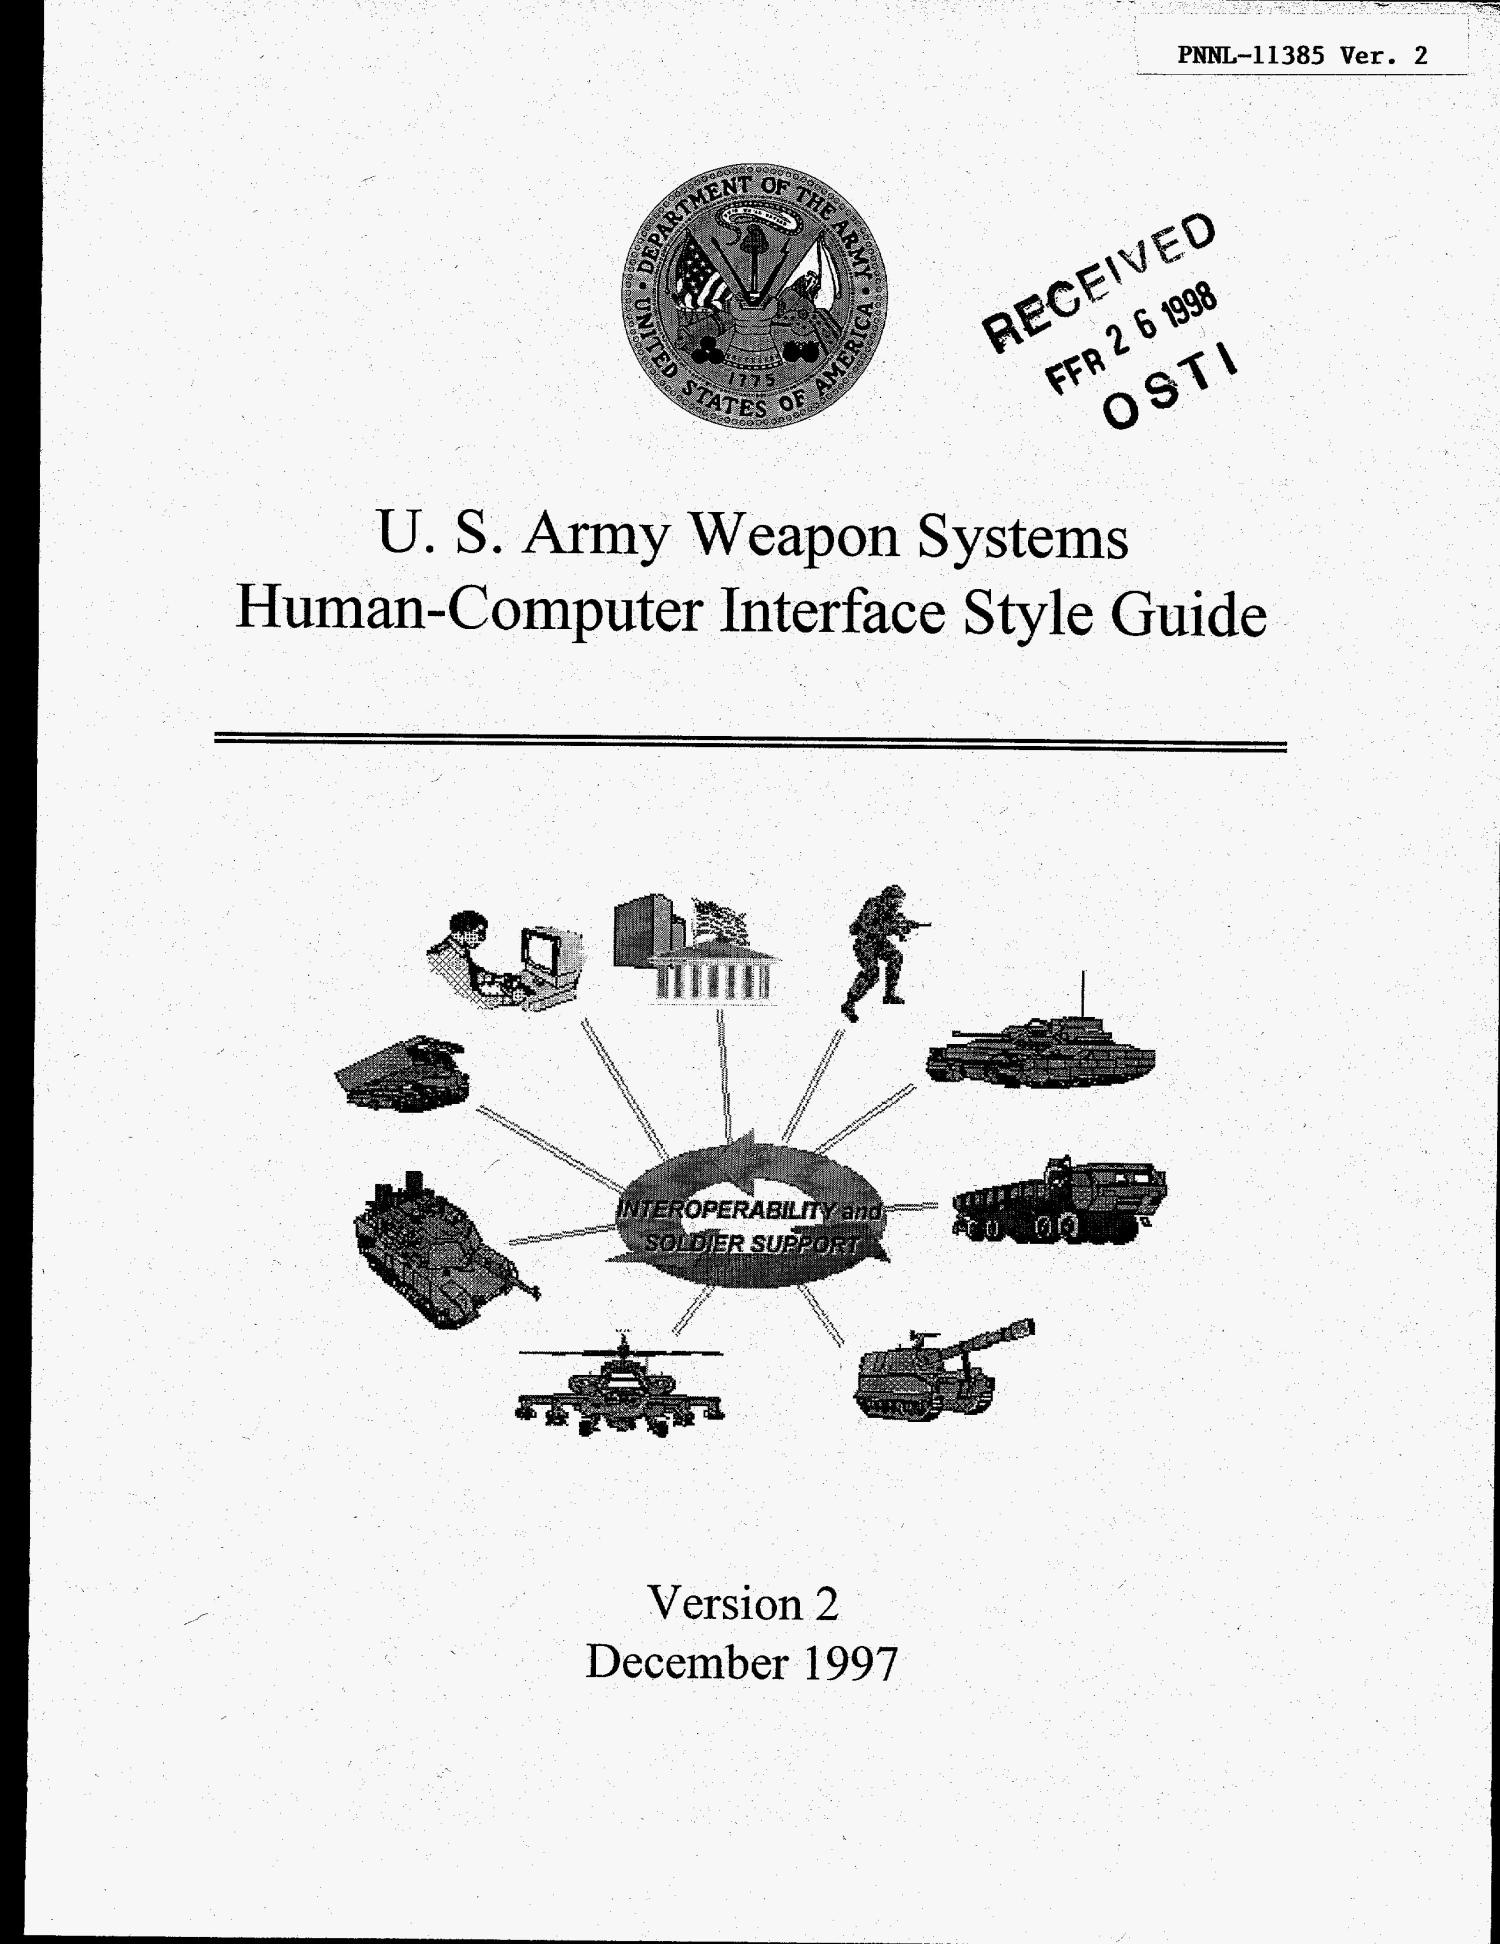 U.S. Army weapon systems human-computer interface style